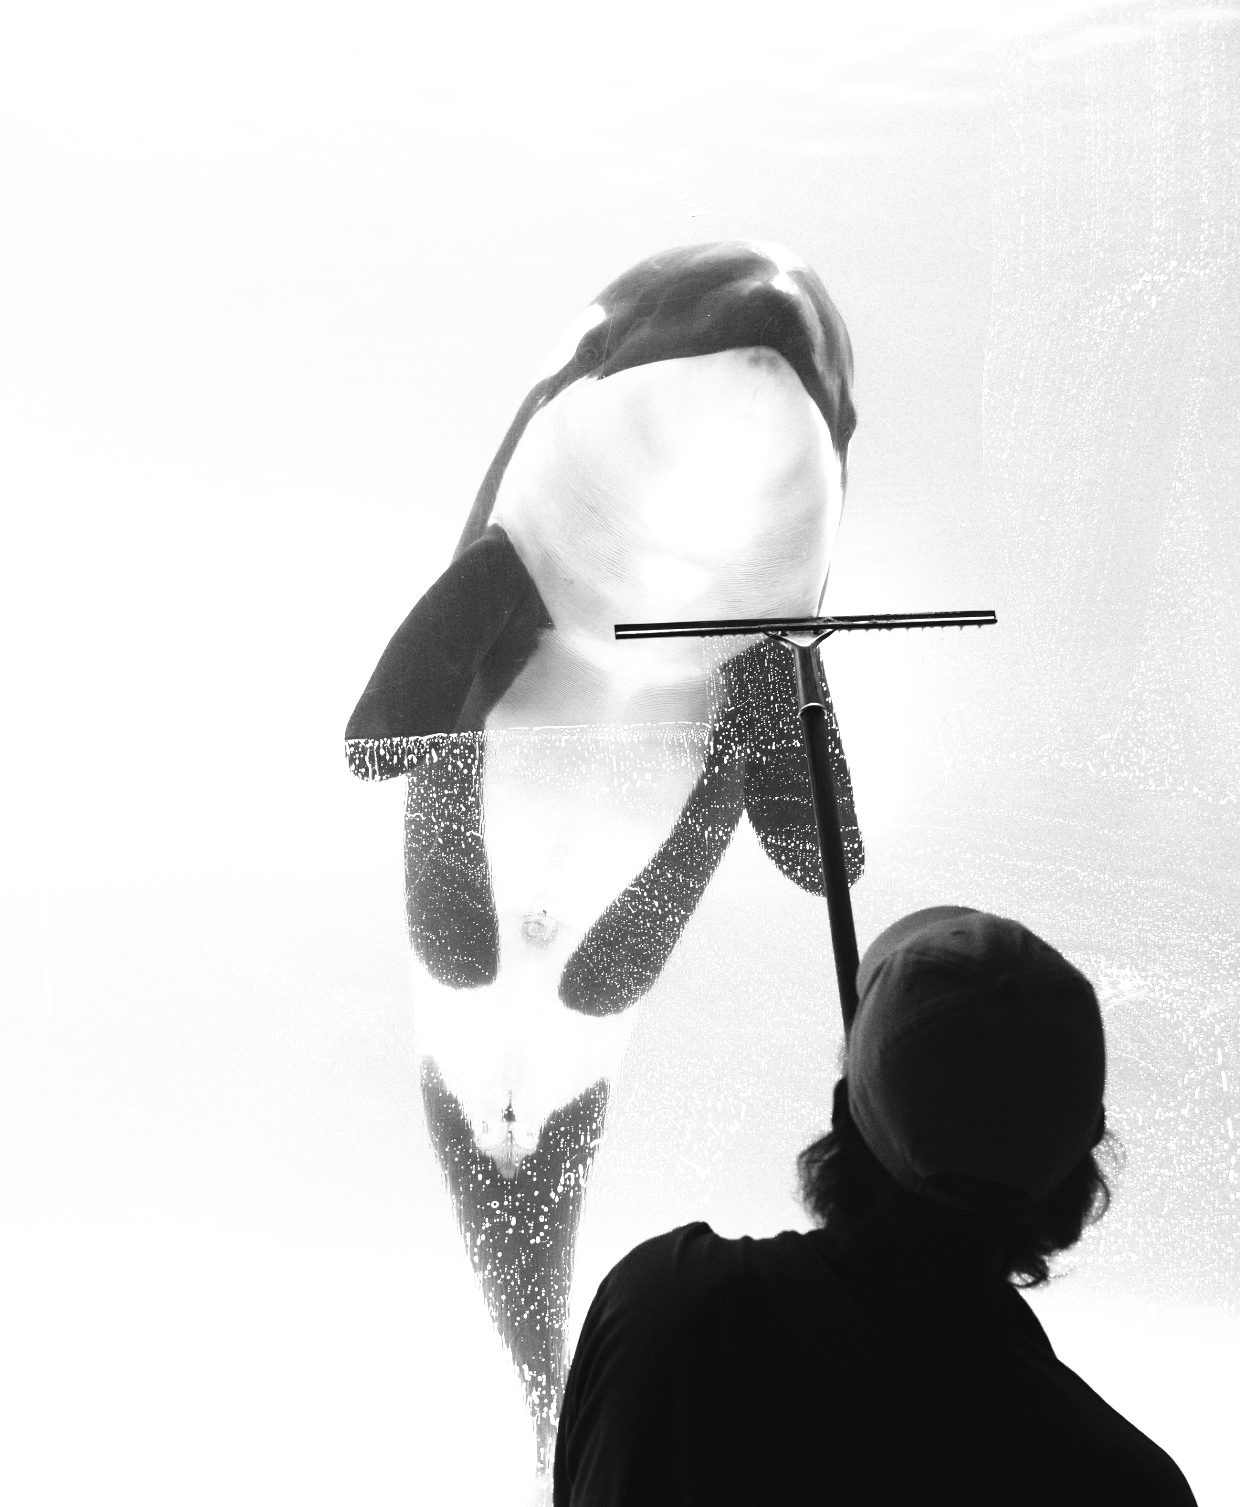 Cleaning glass in front of an orca